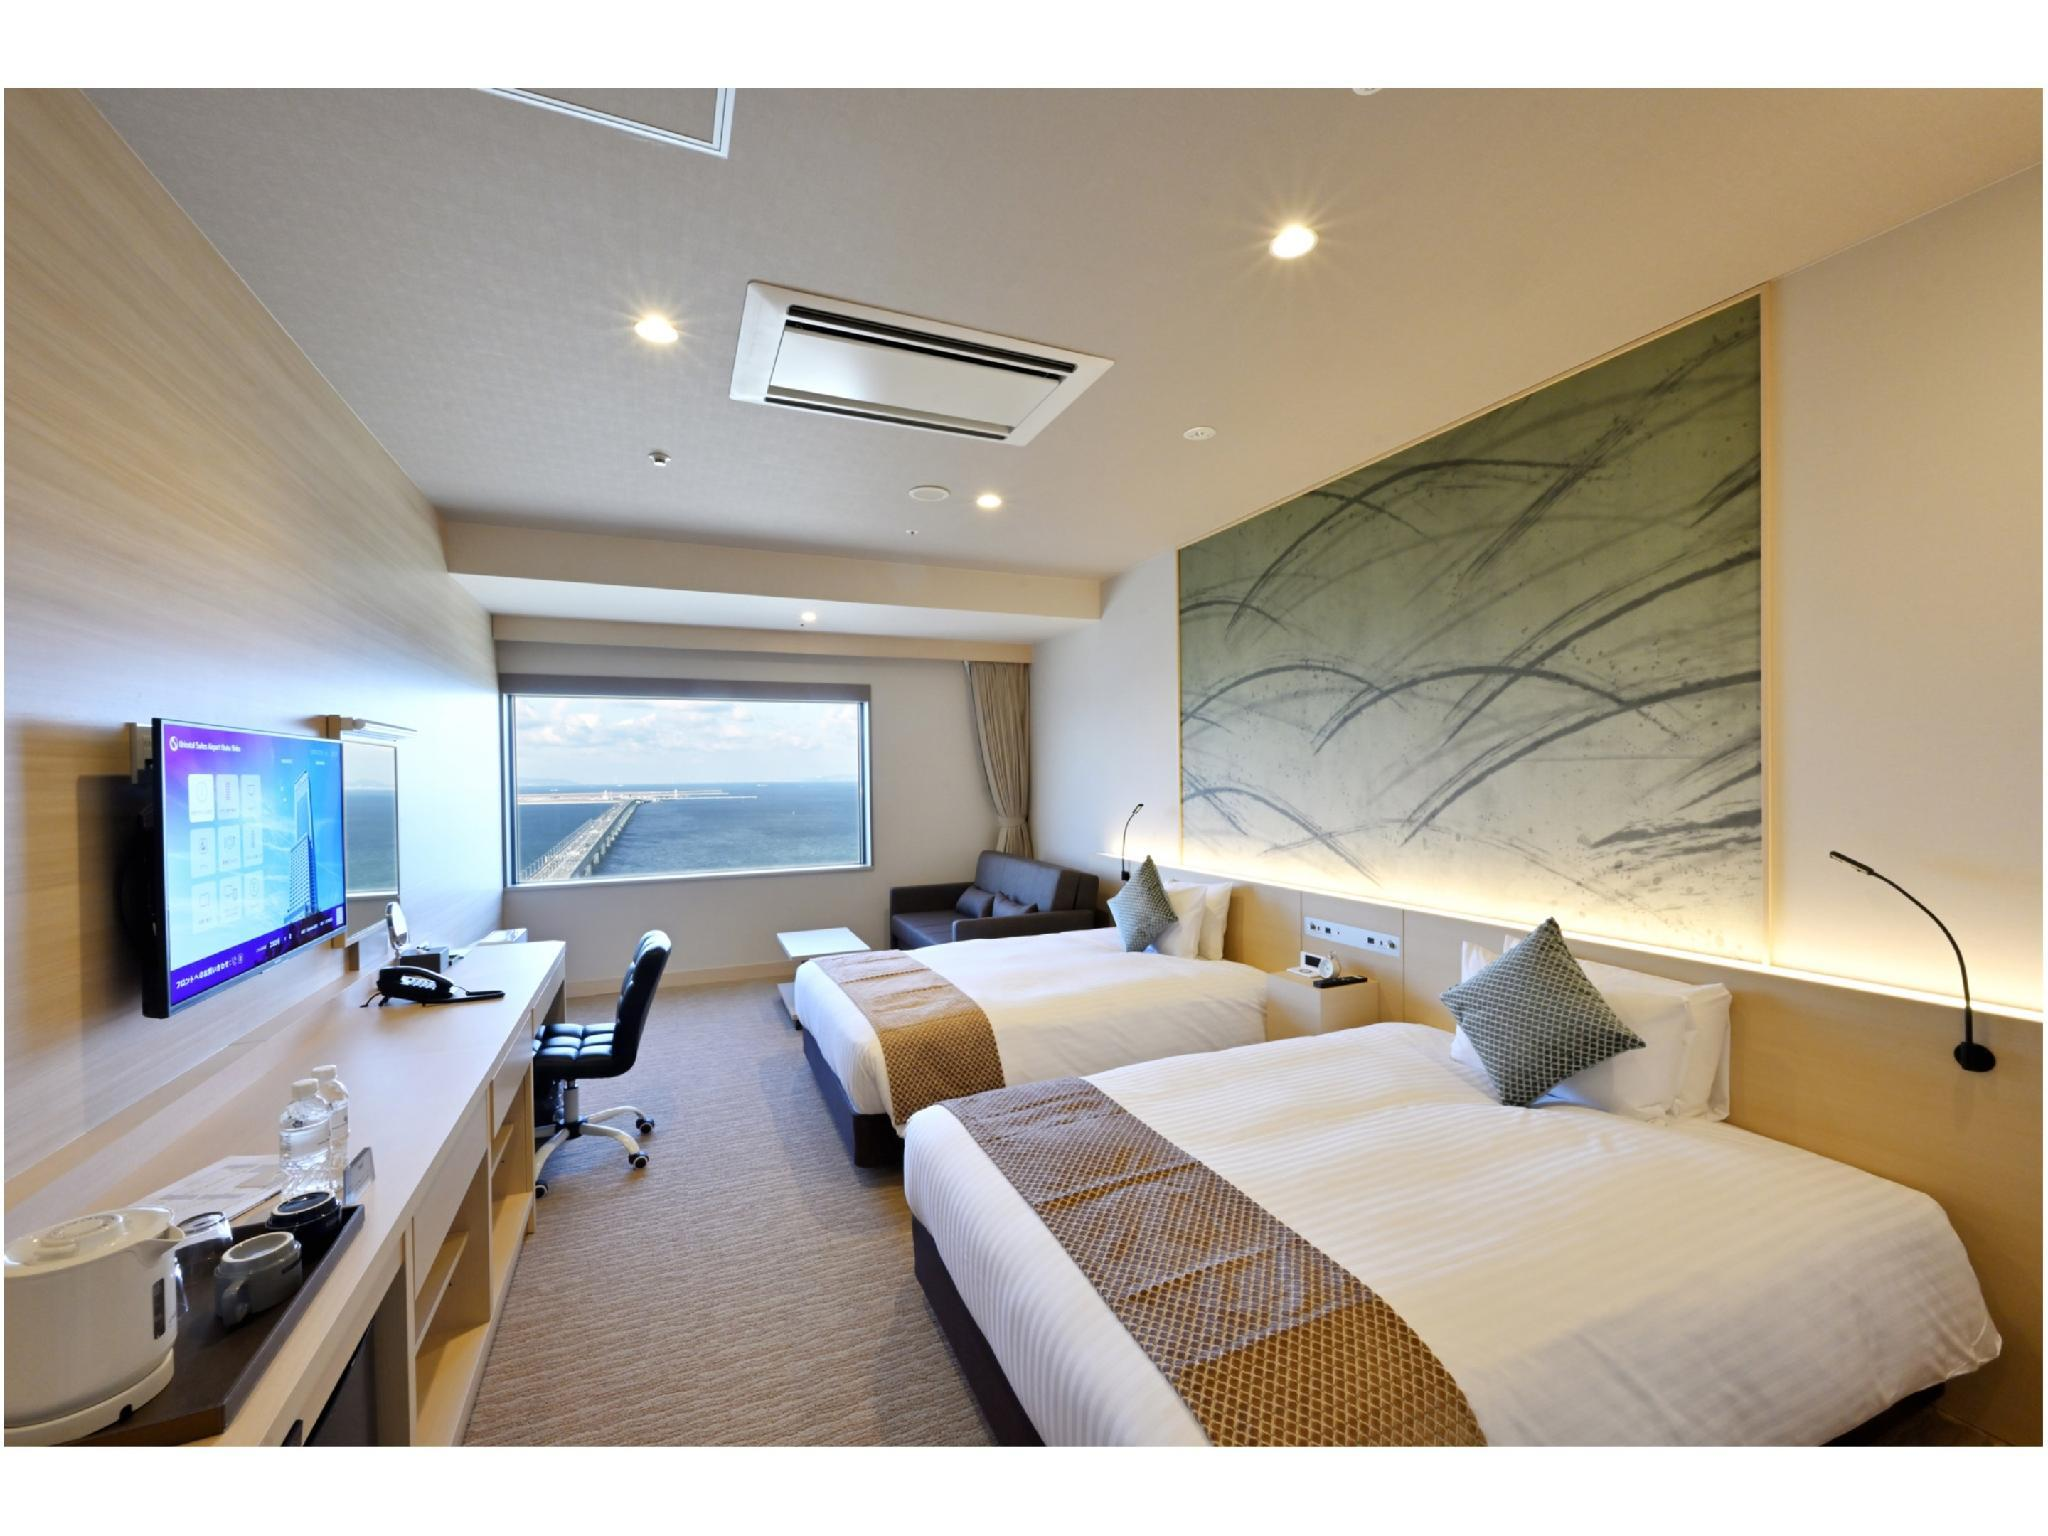 標準雙人雙床房+簡易床(海灣景) (Standard Twin Room with Extra Bed (Bay View))